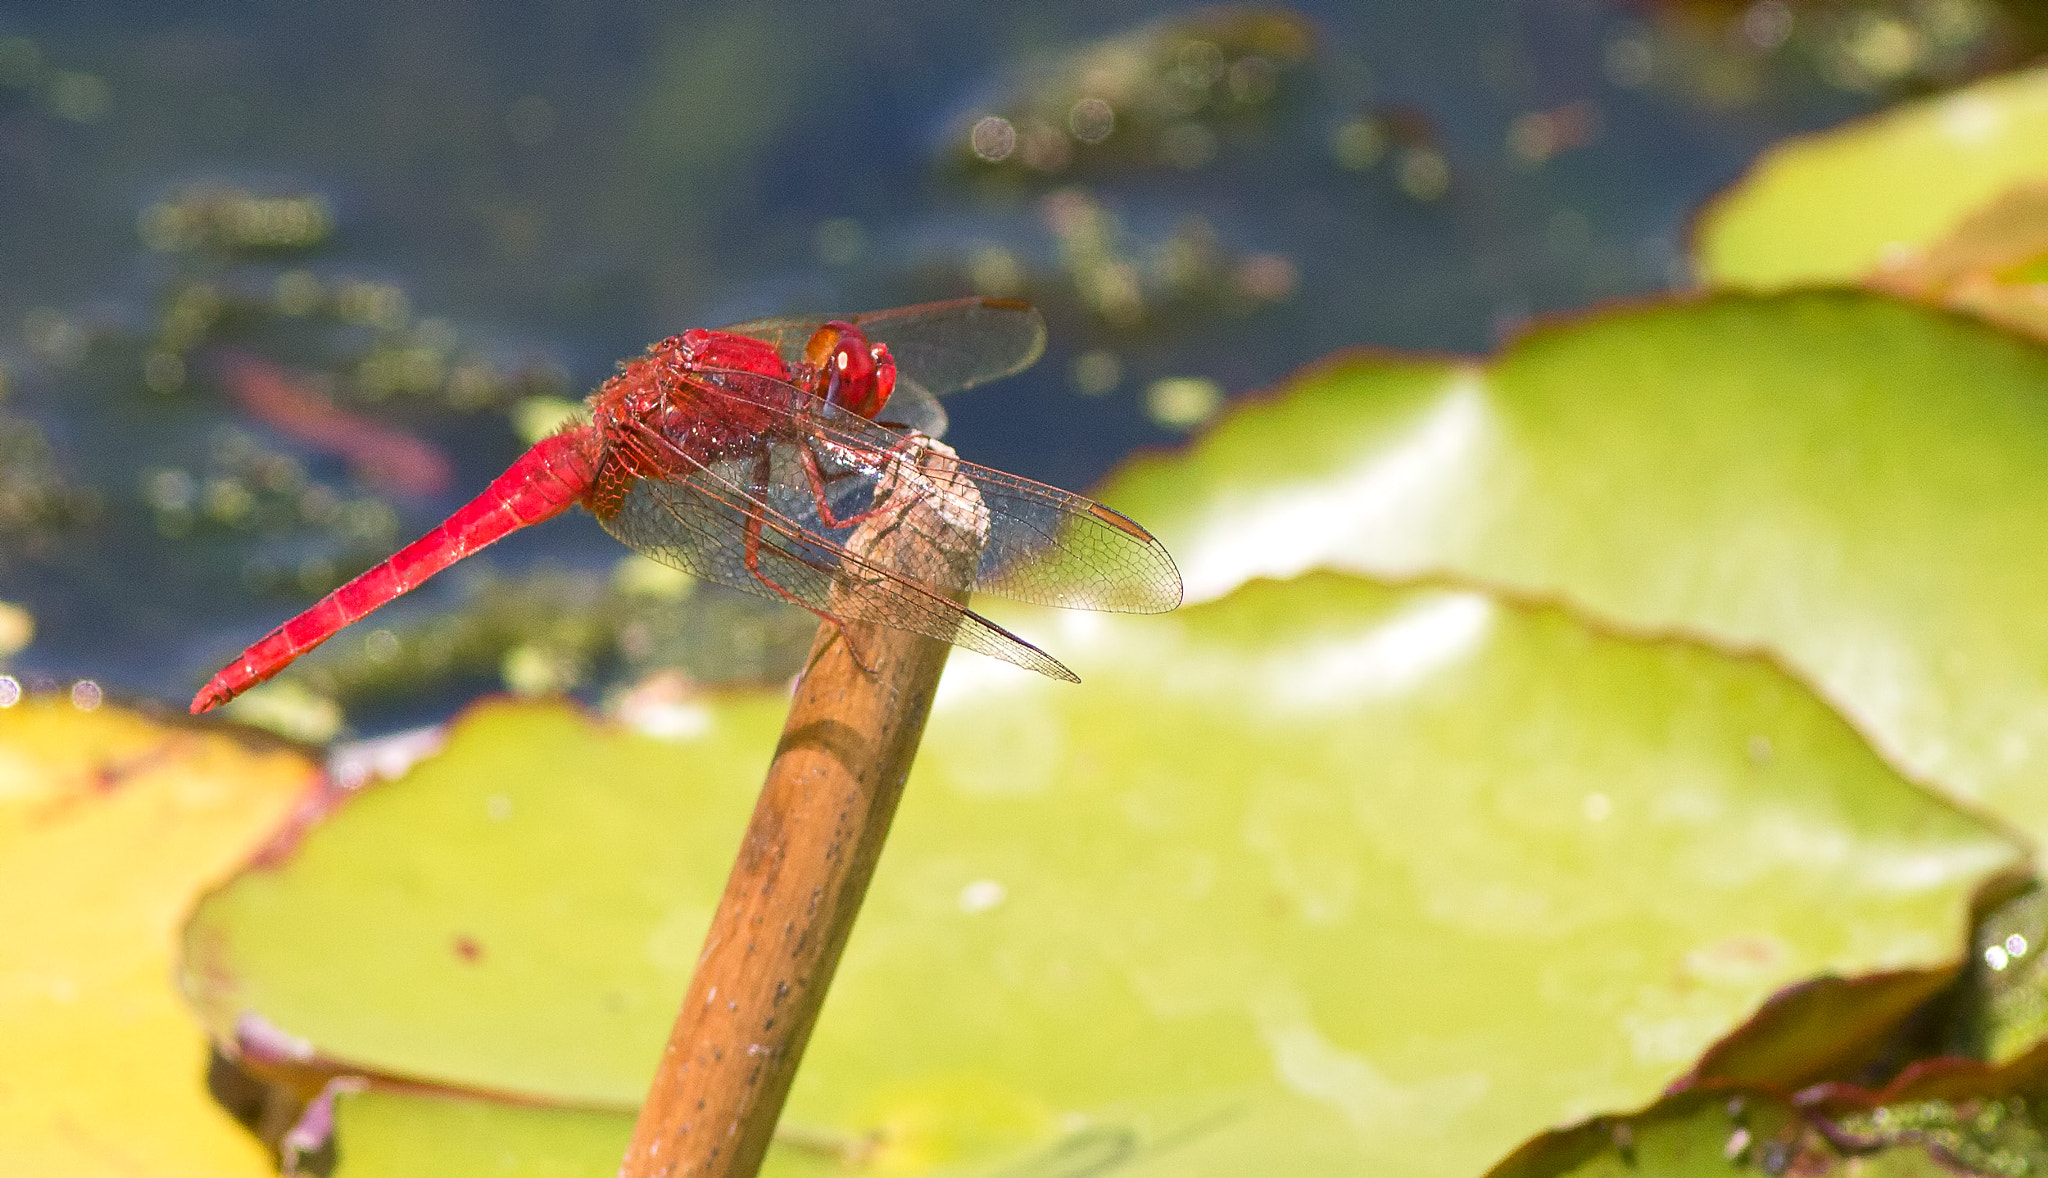 Photograph dragonfly by Nadia Brooks on 500px